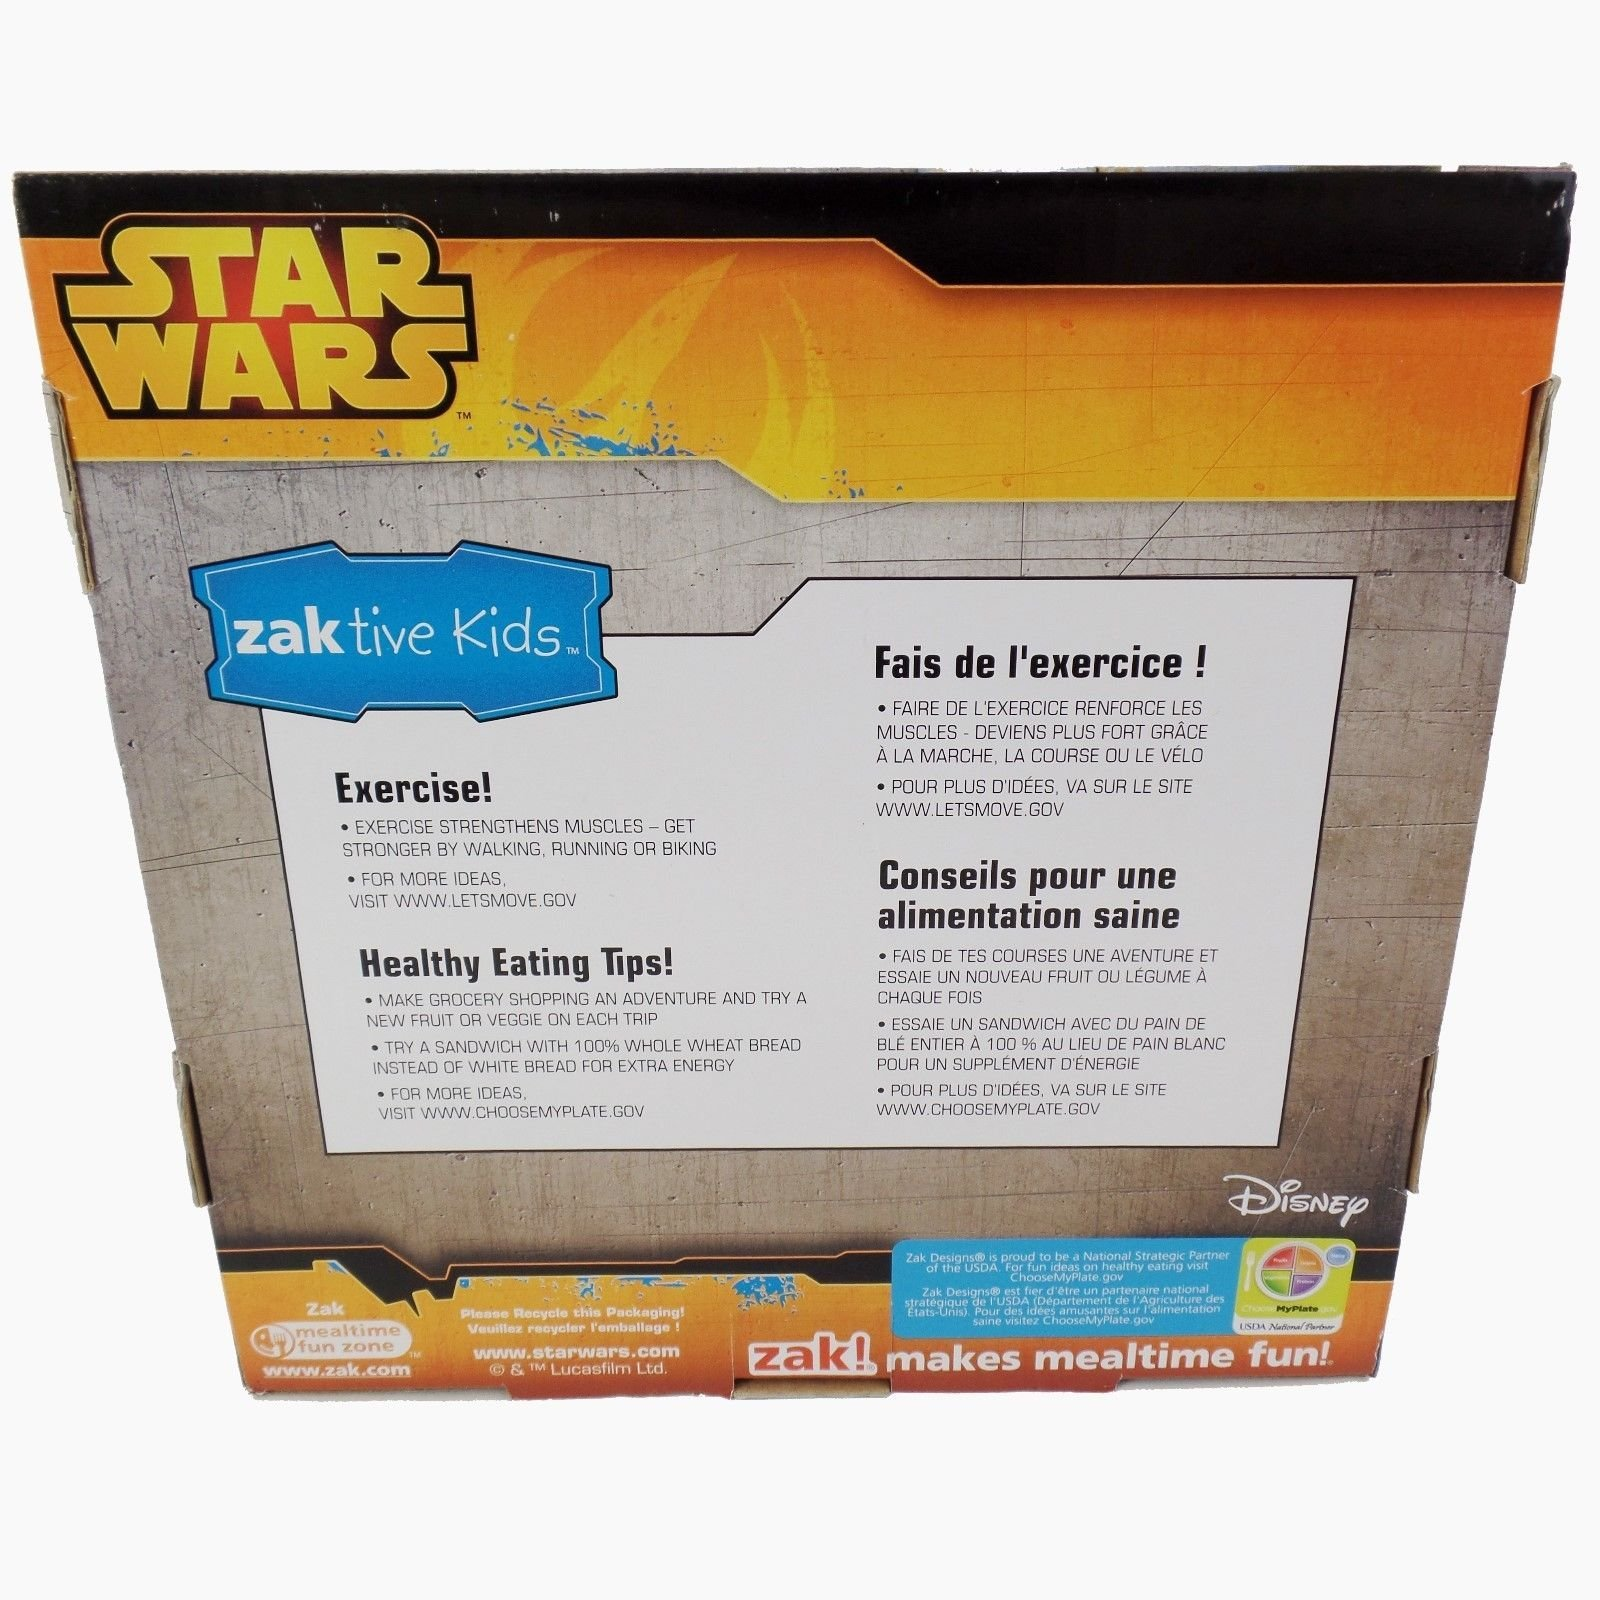 Zak! Designs 3-piece Mealtime Set includes Plate, Bowl and Tumbler with Star Wars The Force Awakens Graphics